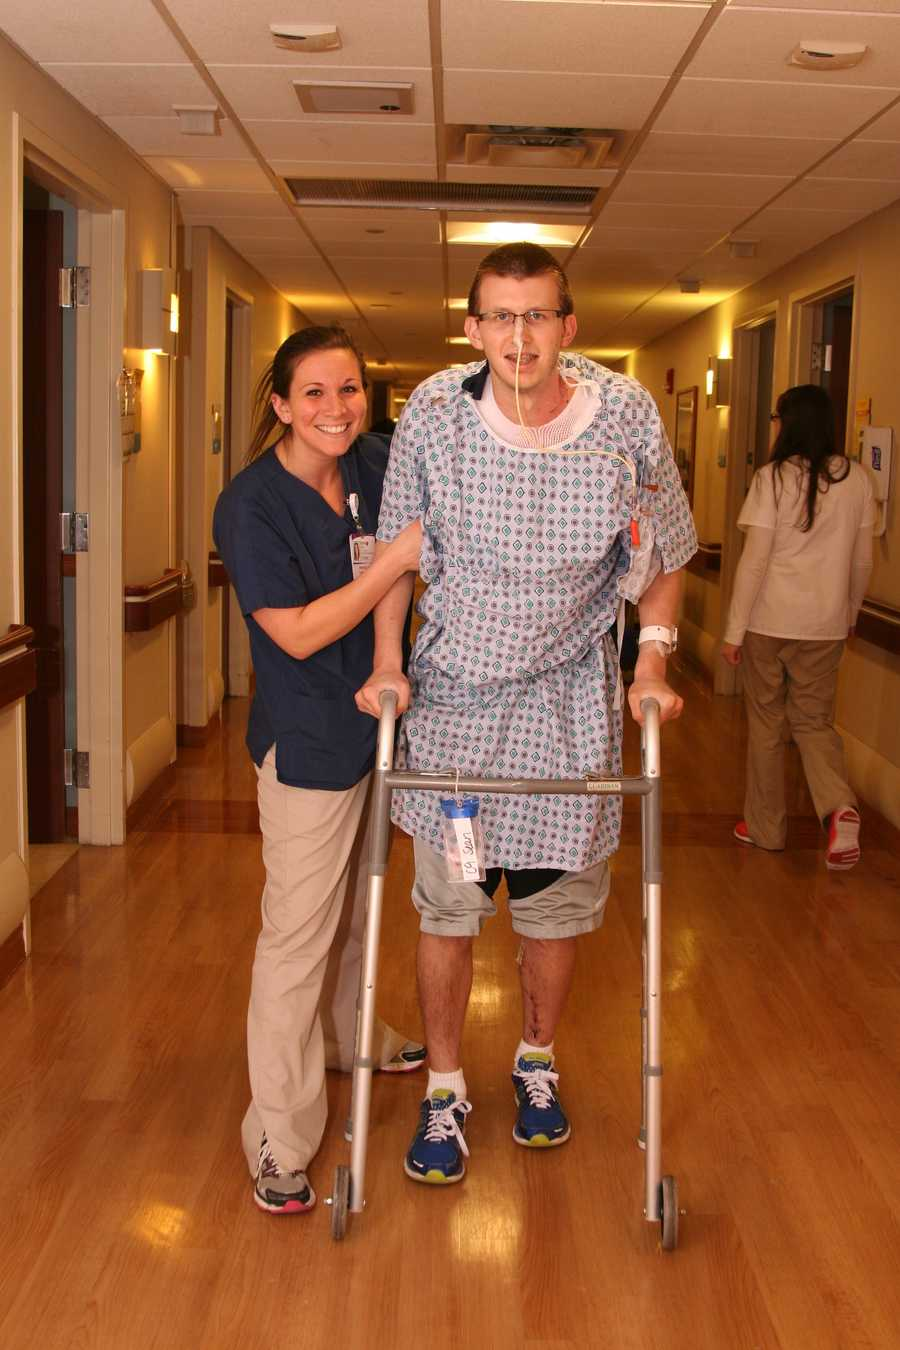 WALKING DOWN MEMORY LANE: More coincidence! Physical Therapist Erin Boyle walks with Sean. Erin is a former classmate of Sean's at St Mary's School in Glenshaw. Erin asked Sean to his first school dance at St Mary's!